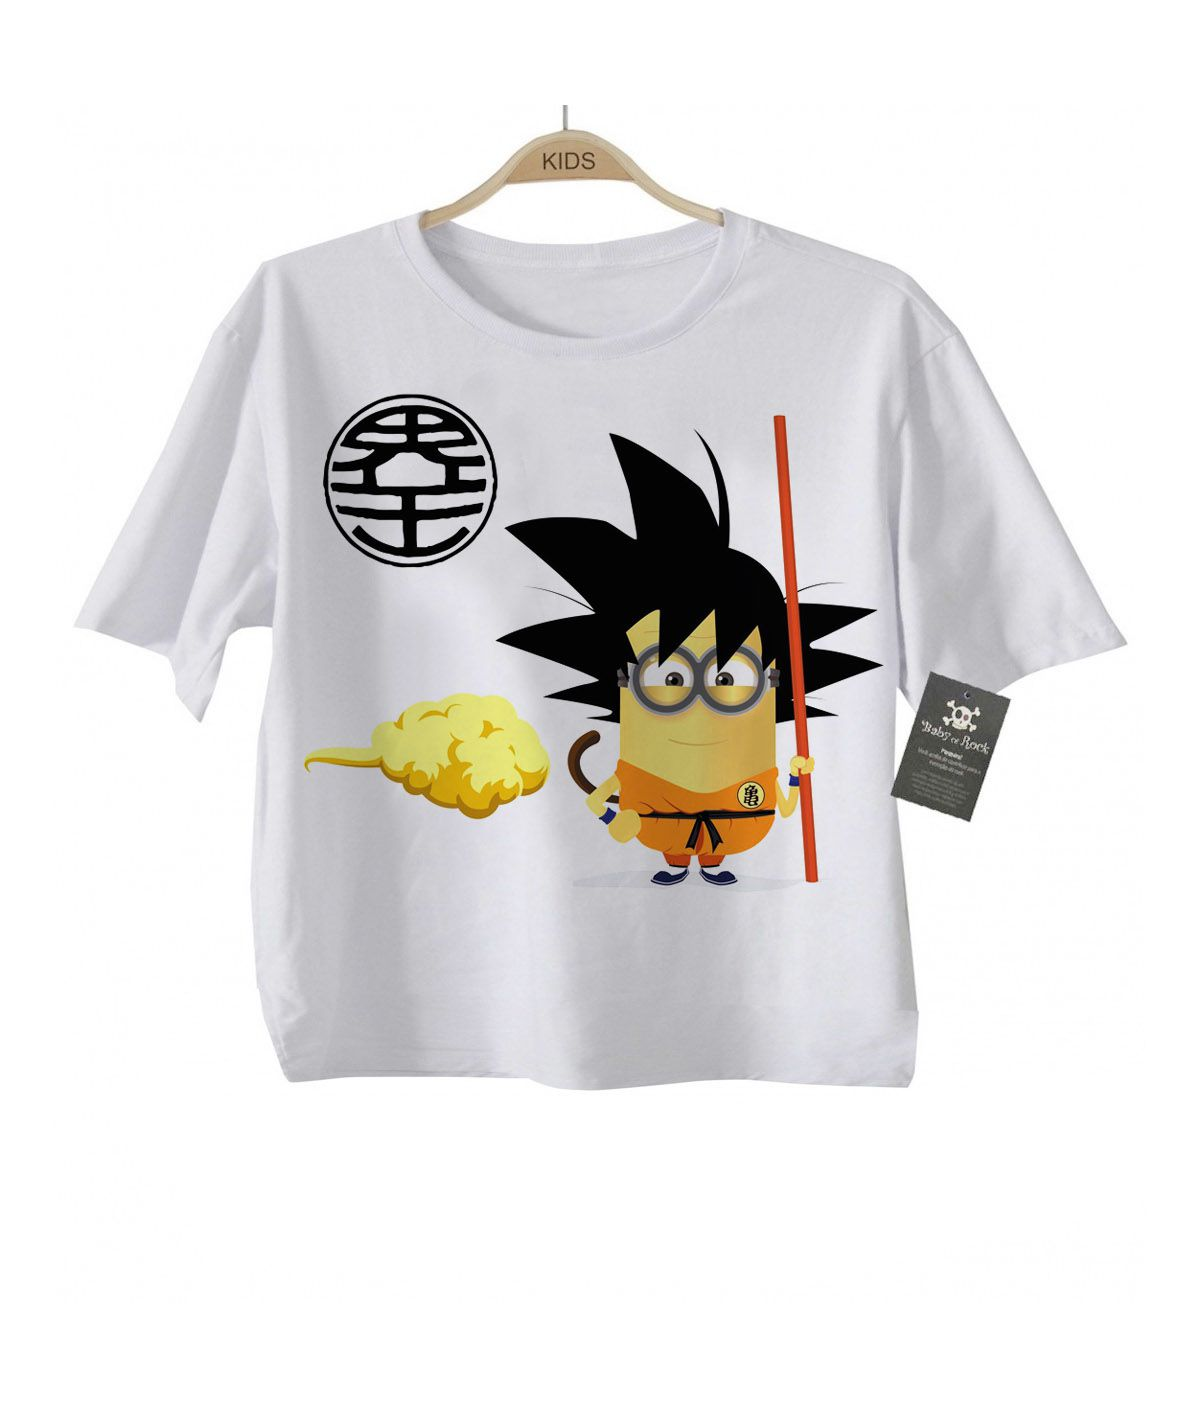 Camiseta Dragon Ball - Goku Minion - White  - Baby Monster S/A